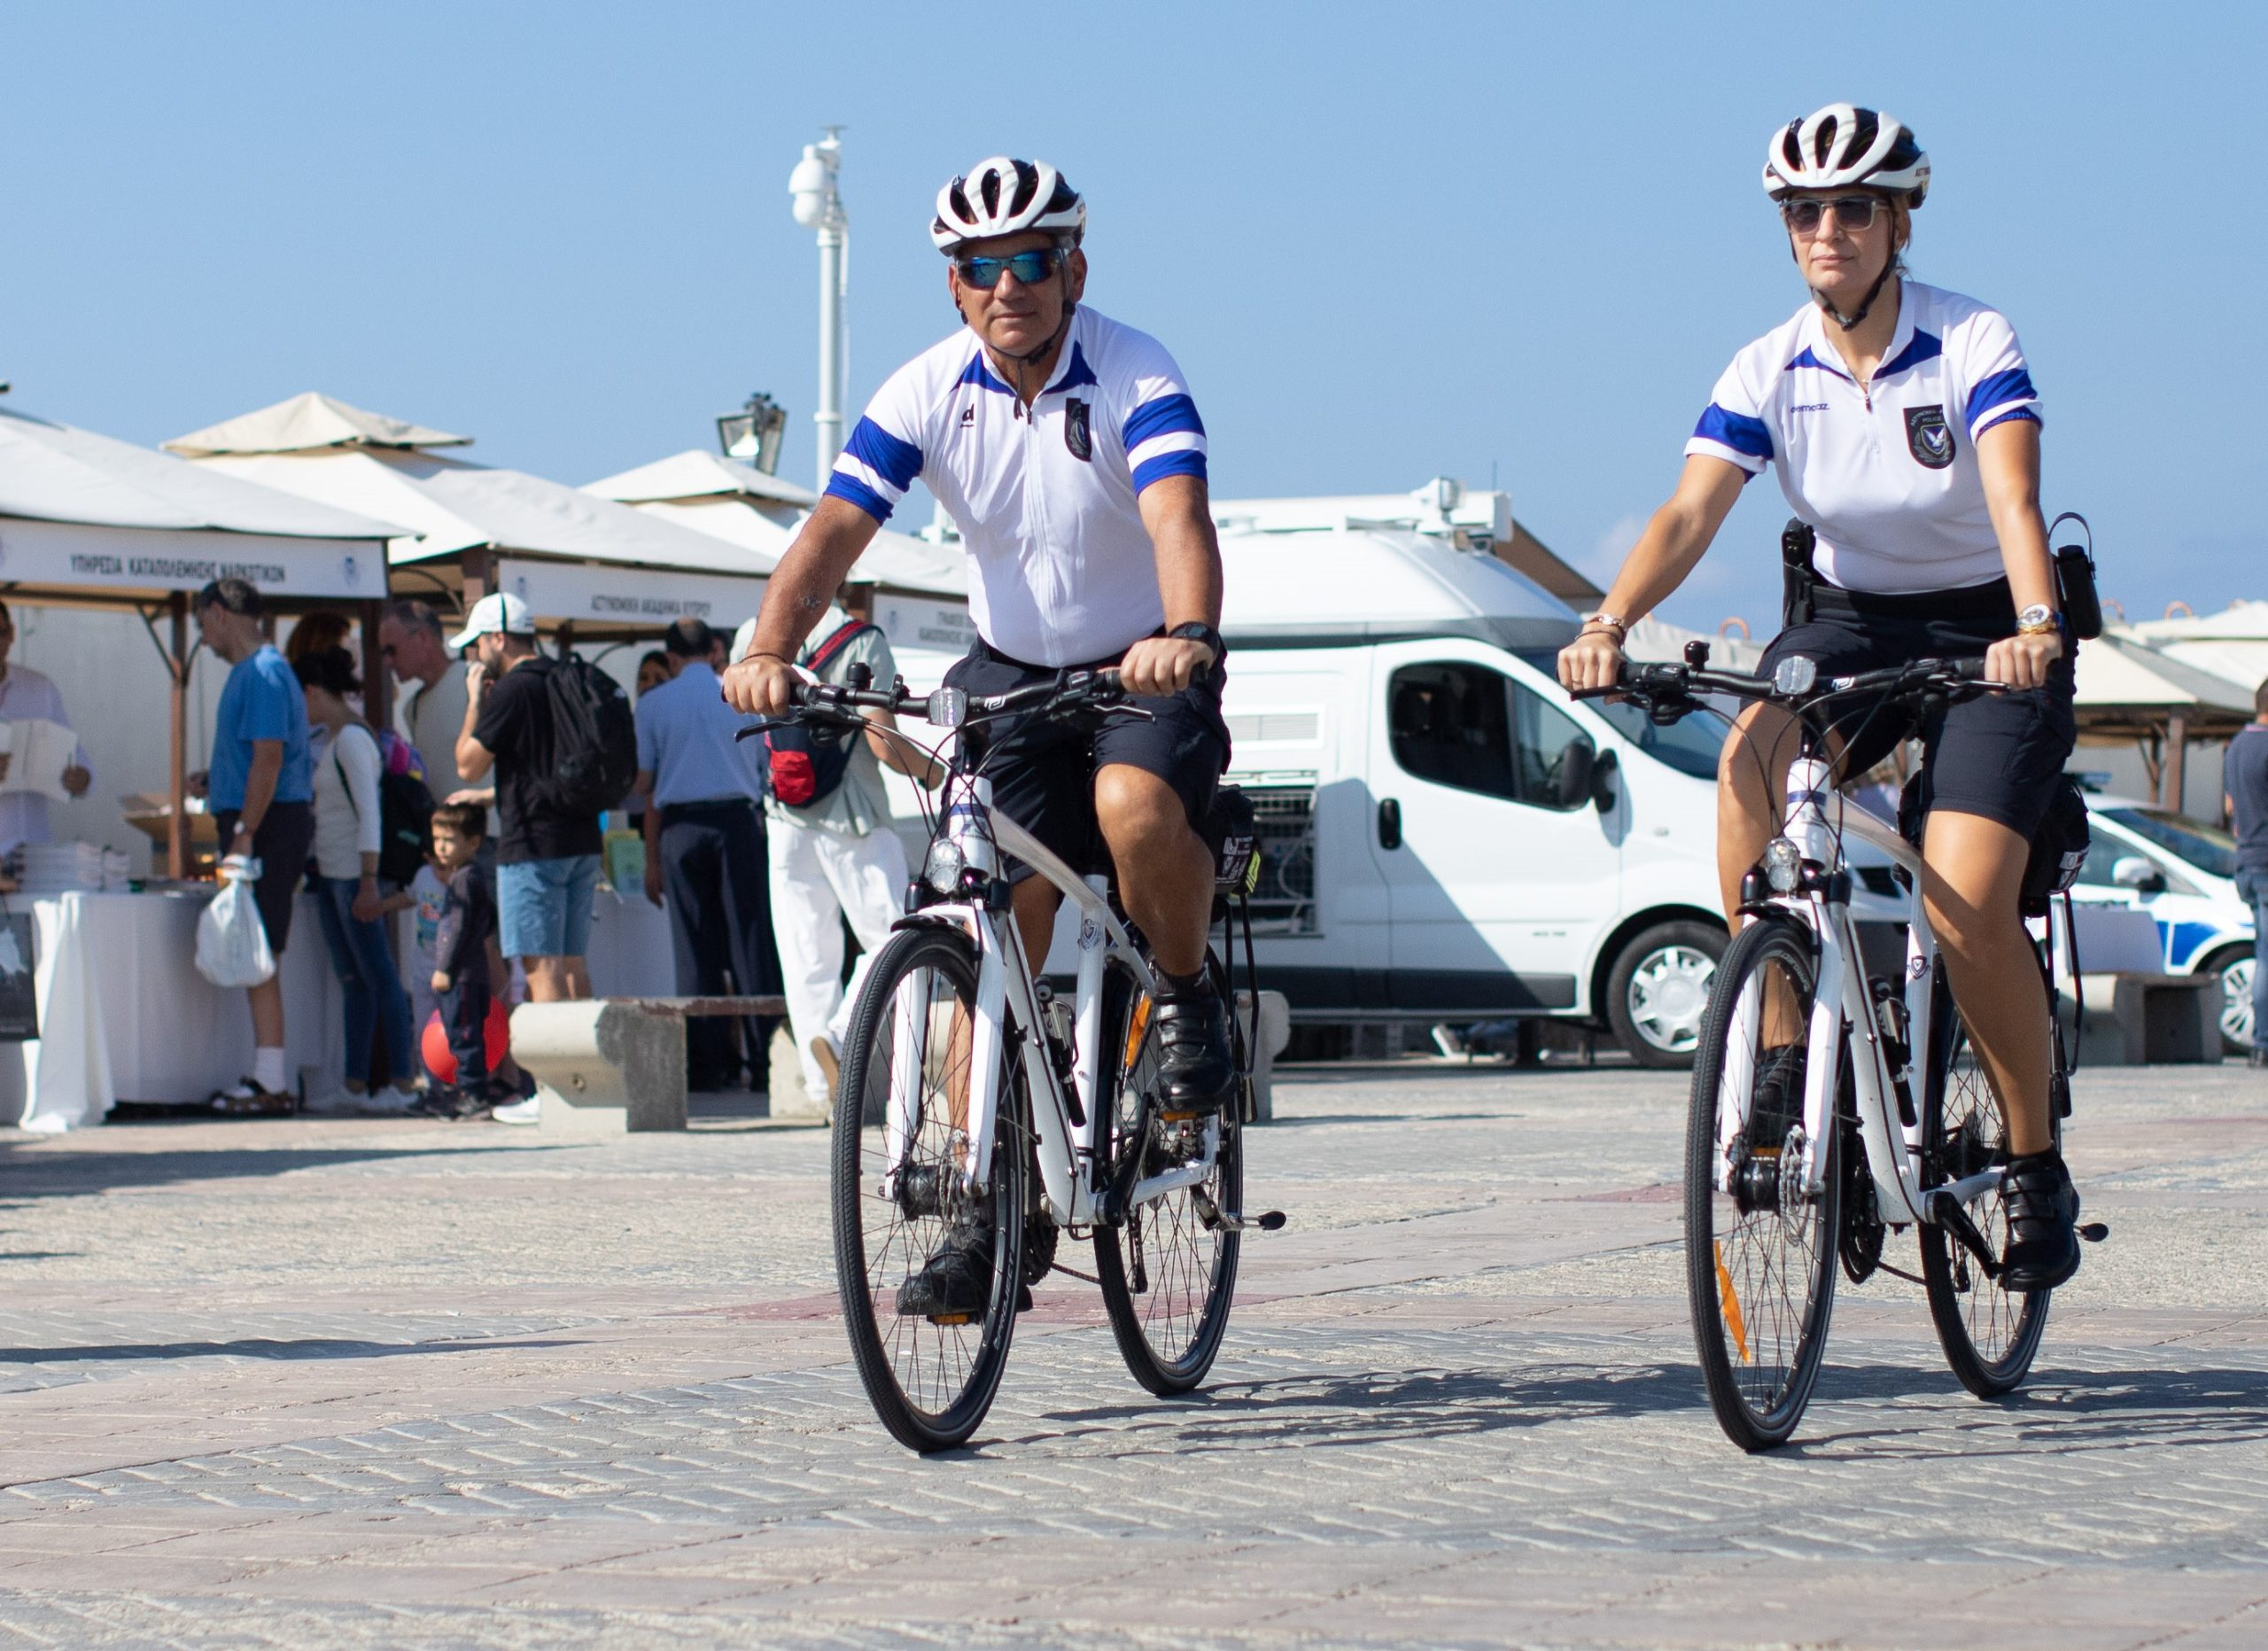 Cyprus to promote cycling to reduce emissions